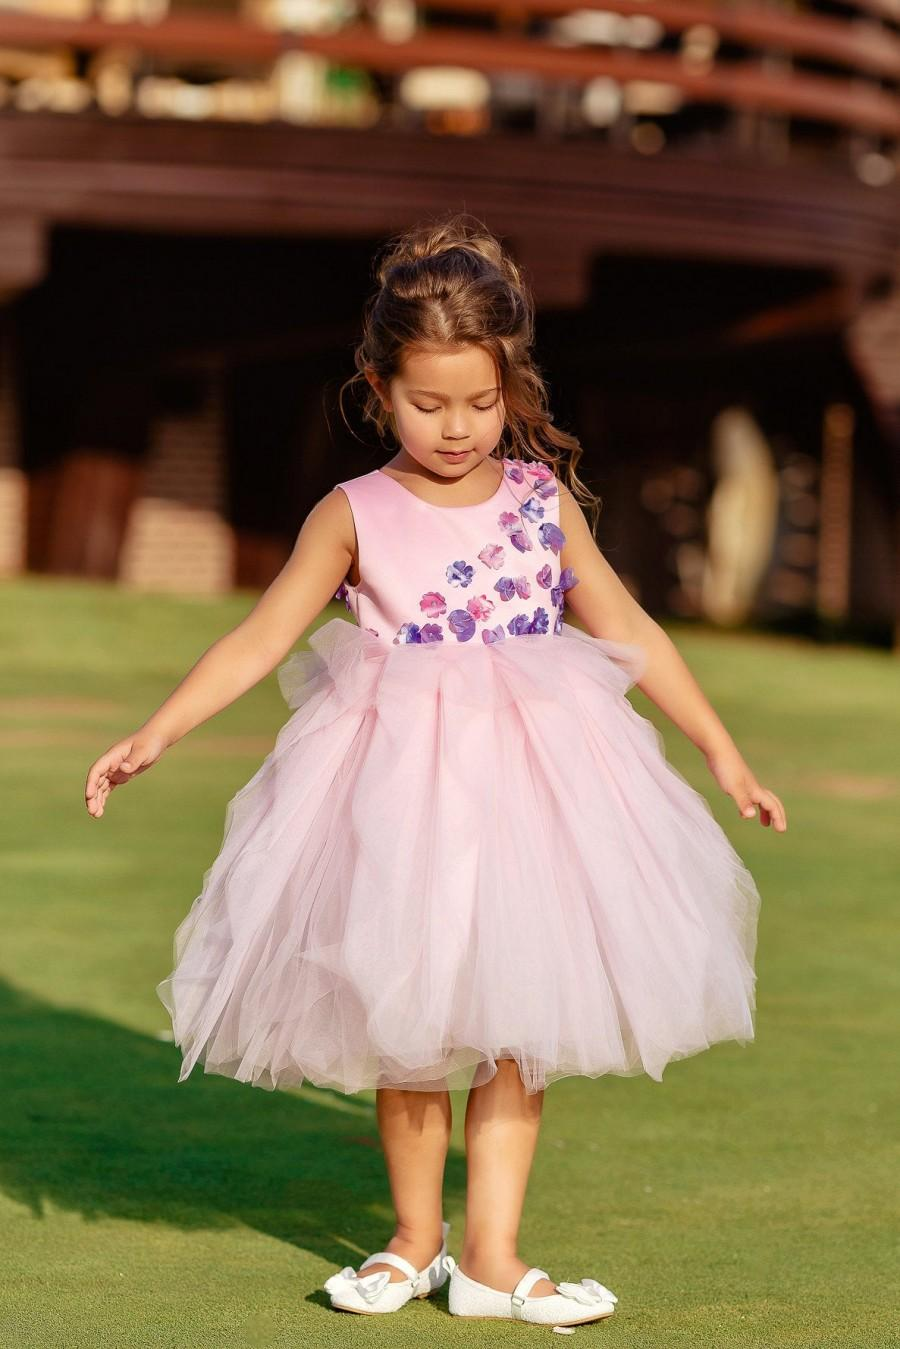 زفاف - Tutu Flower Girl Dress, Flower Girl Dress, Gently Pink Flower Girl Dress, Tulle Flower Girl Dress, Wedding Girl Dress, Baby Flower Dress